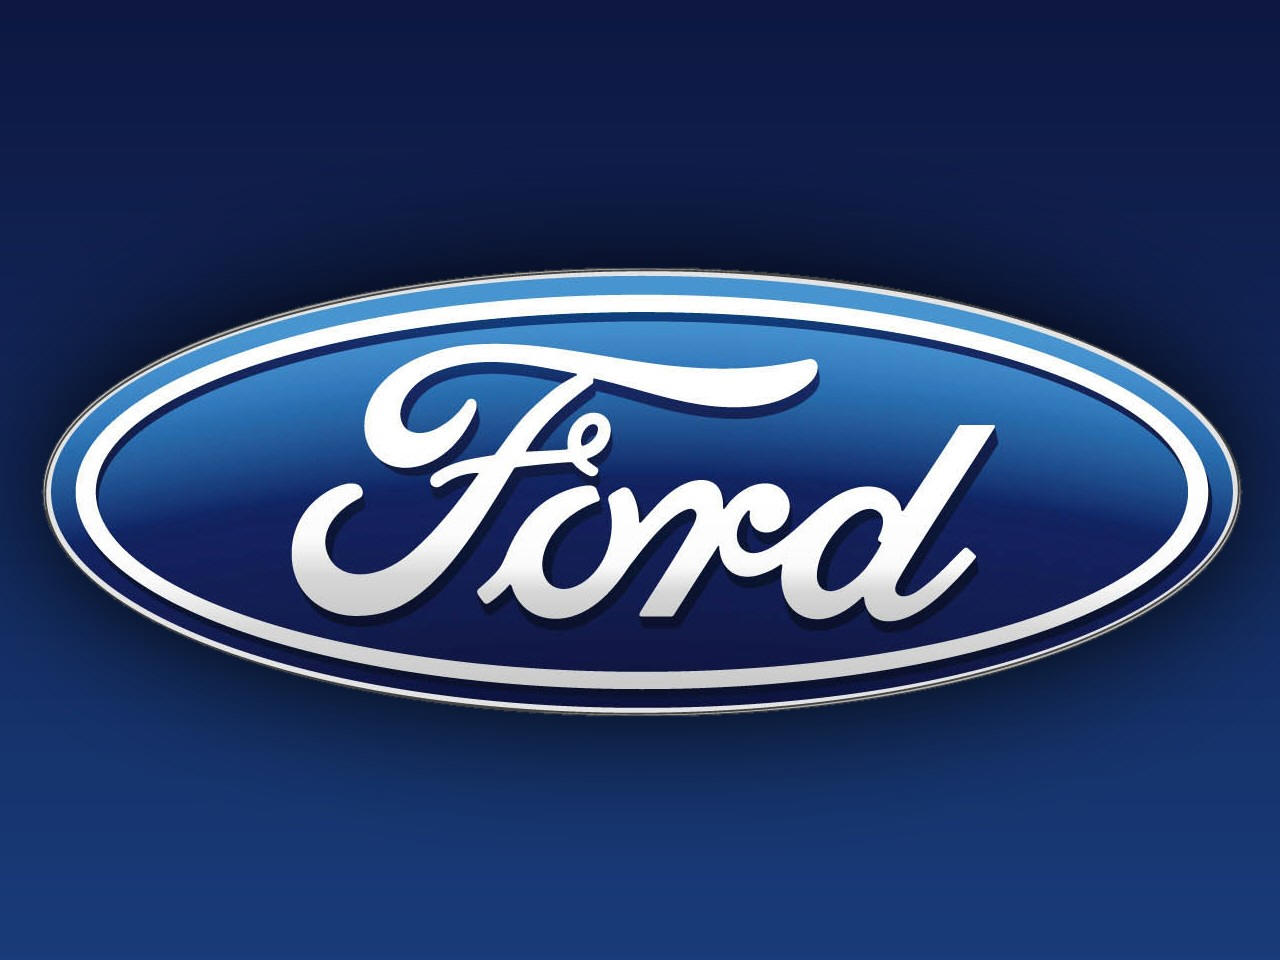 Ford credit earns 427 million in the third quarter of 2009